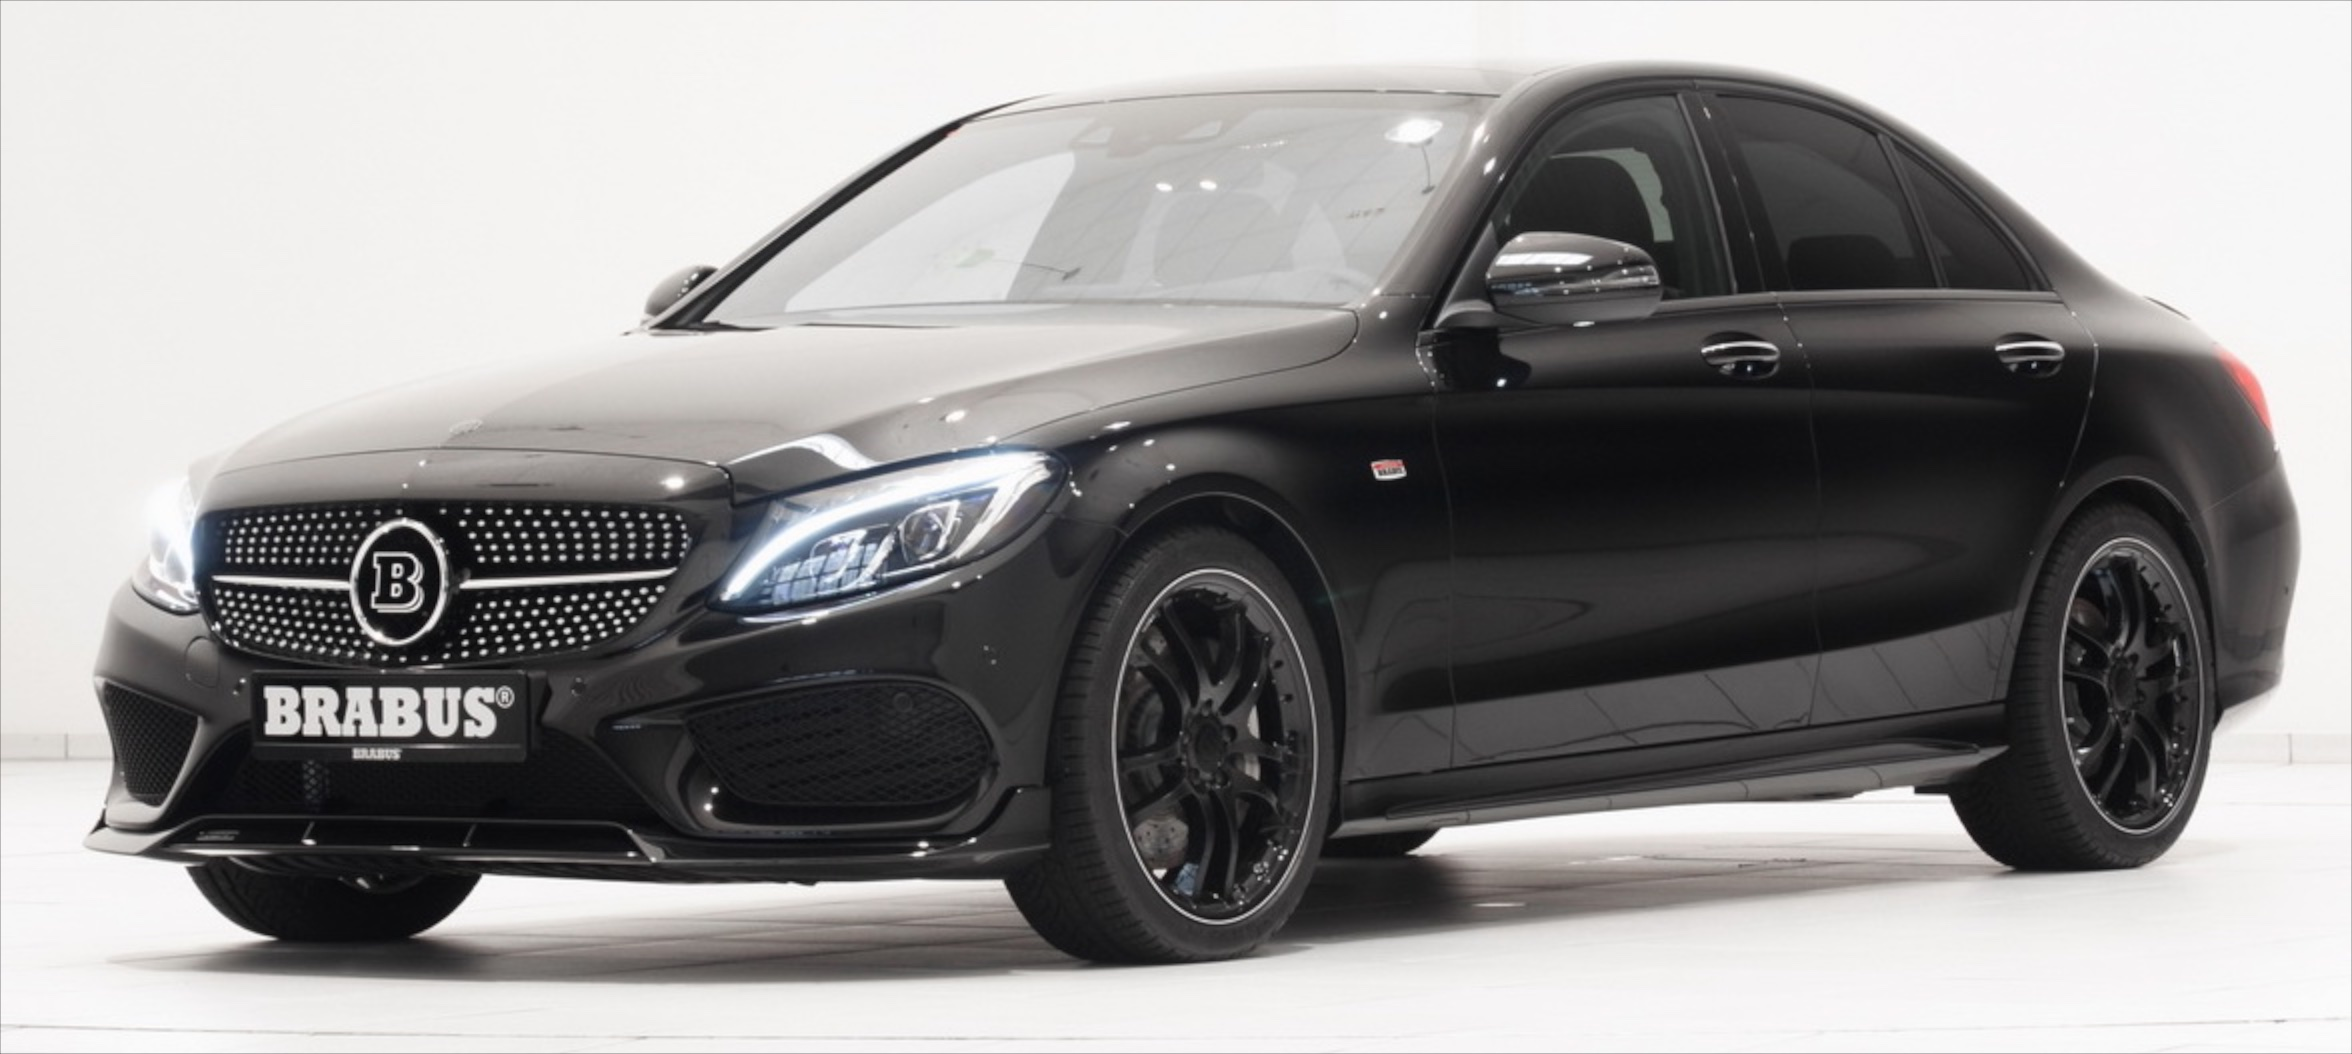 brabus tunes the merc c450 amg to 410 hp 570 nm and. Black Bedroom Furniture Sets. Home Design Ideas